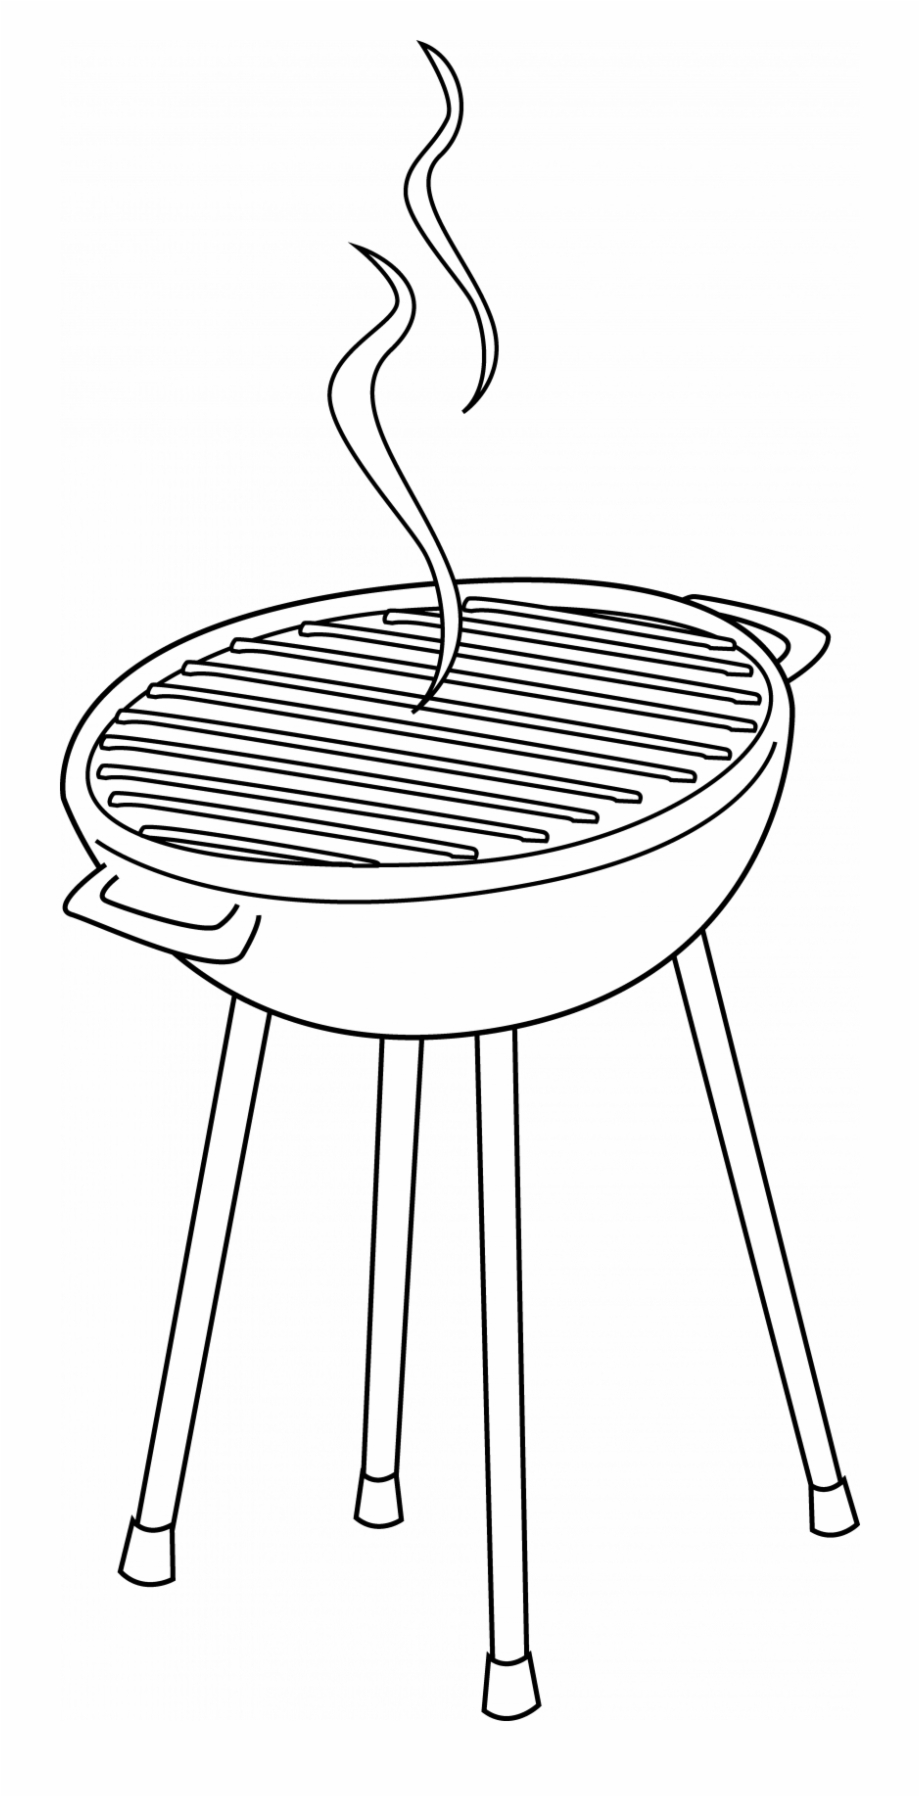 Bbq black and white clipart graphic transparent download Barbeque Grill Clip Art Free - Grill Clipart Black And White Free ... graphic transparent download